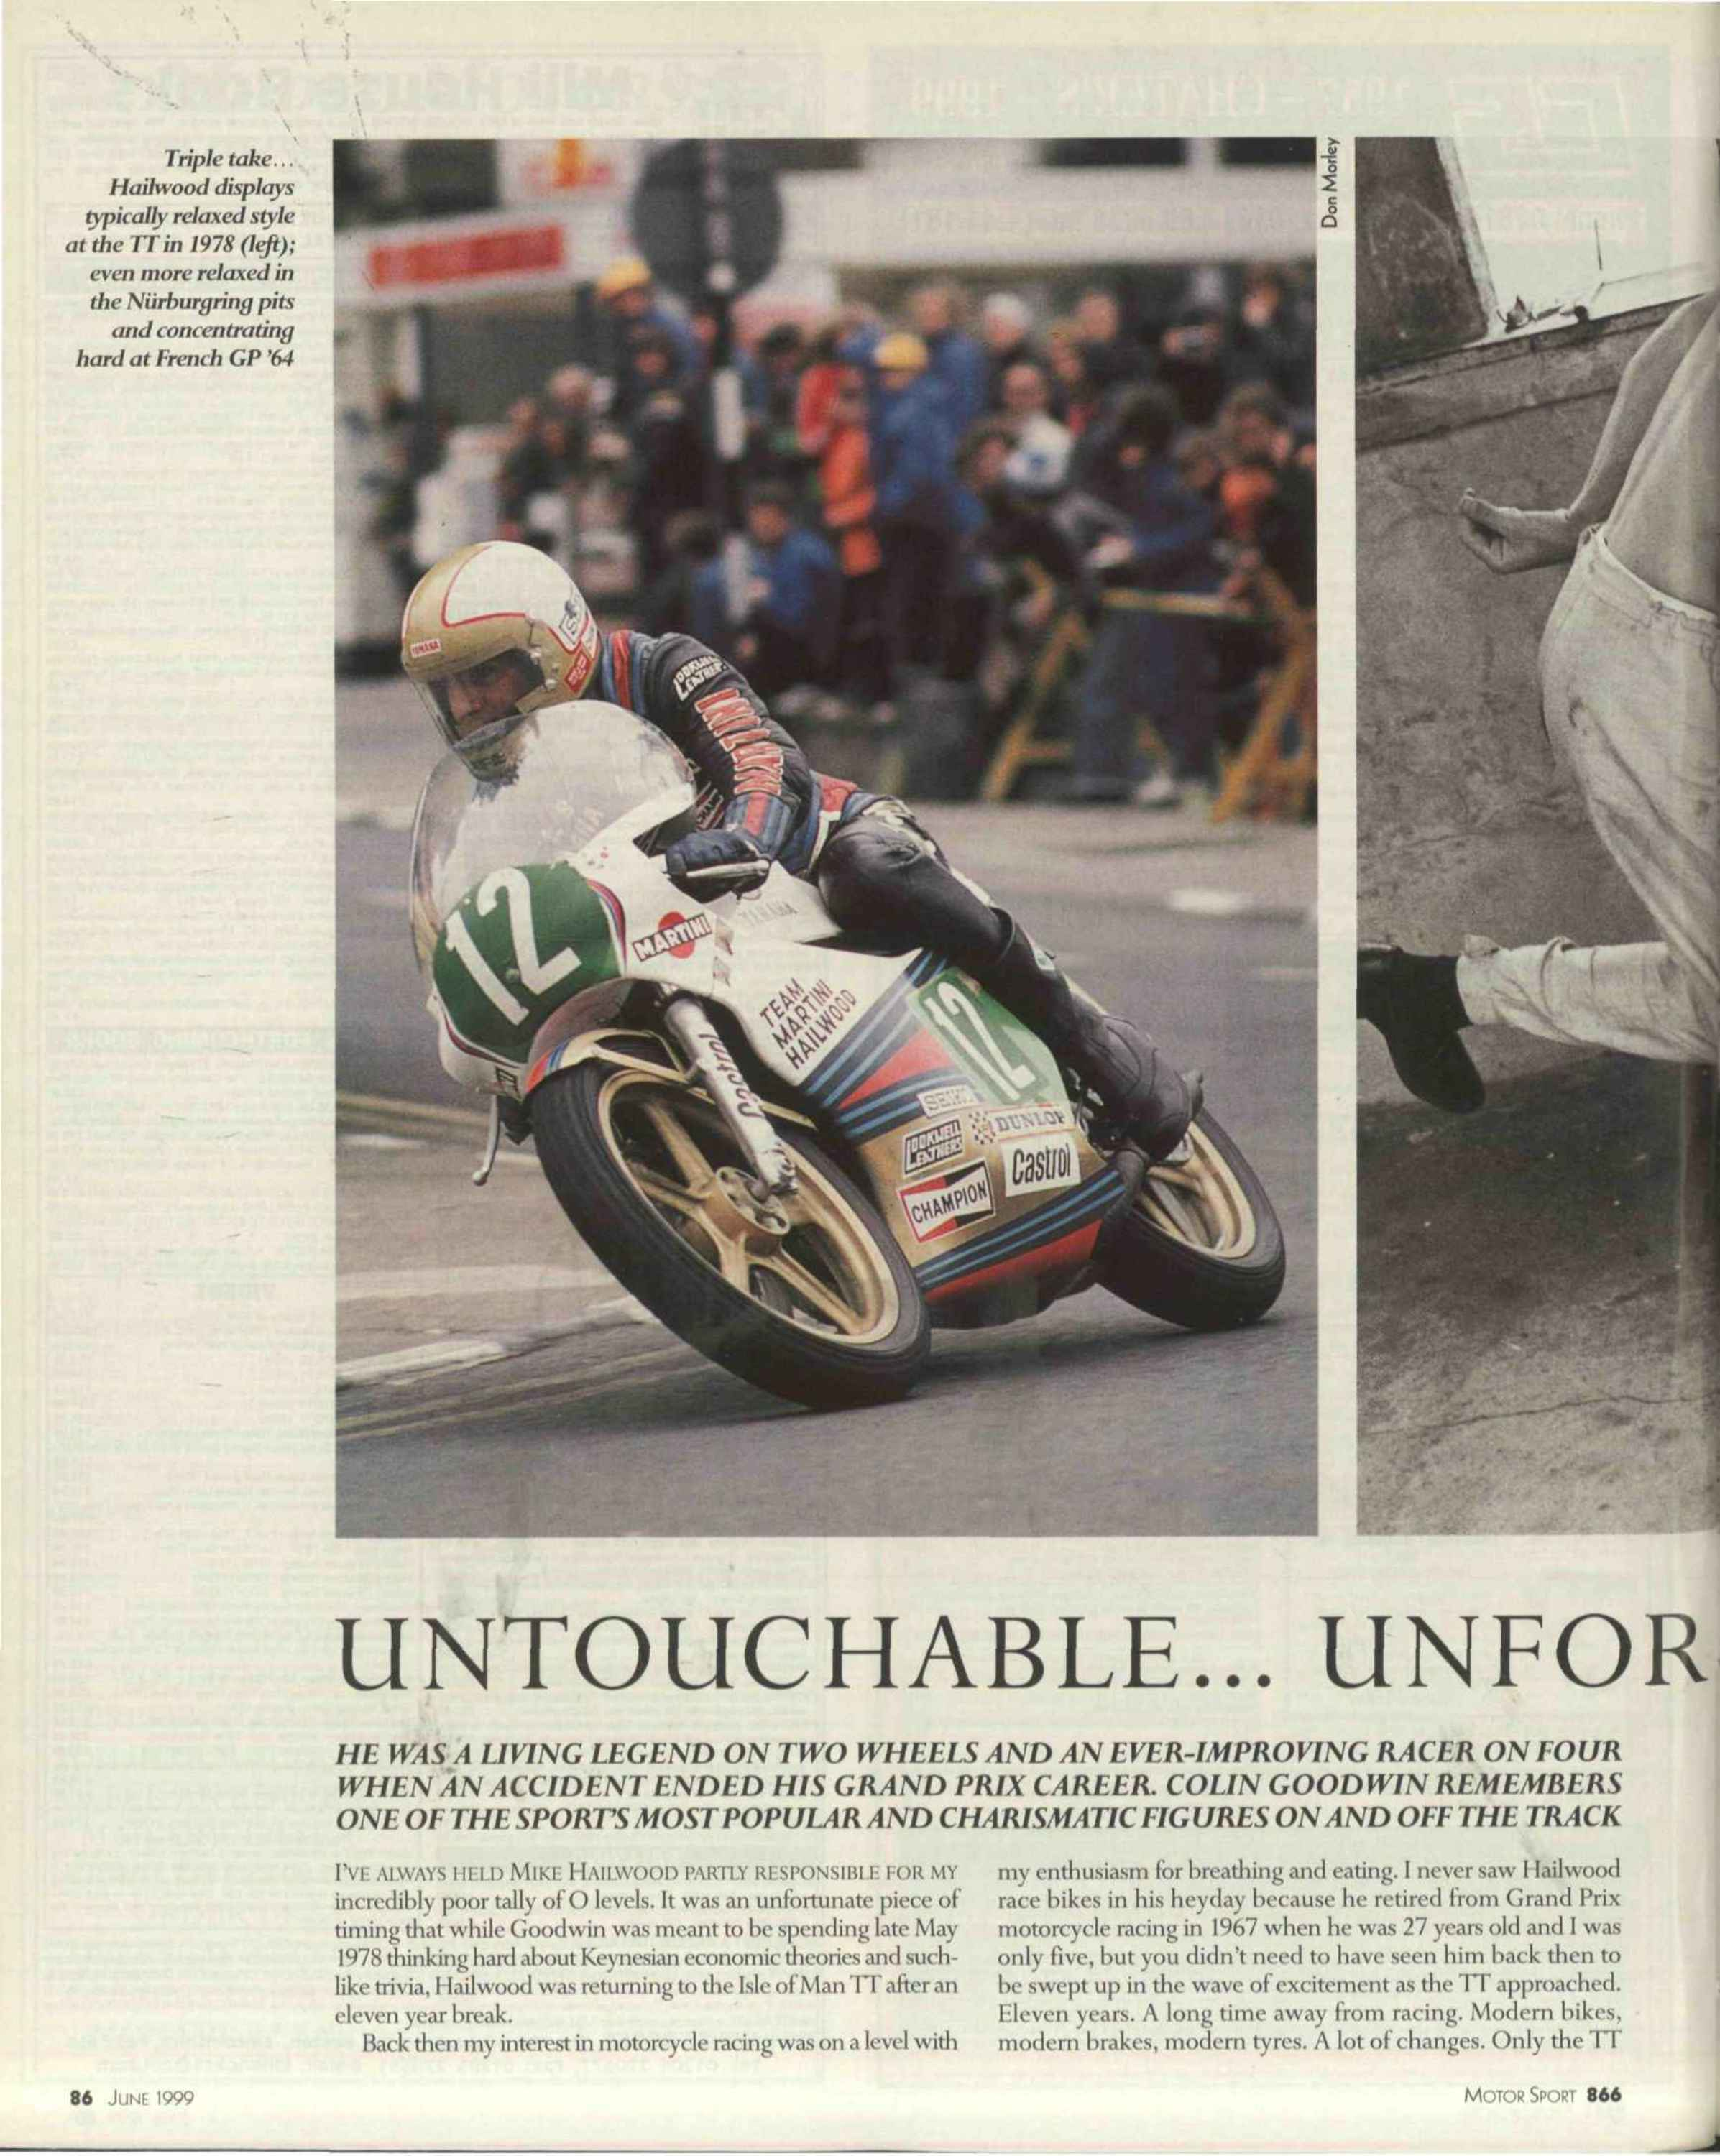 Untouchable... unforgettable... Mike Hailwood image